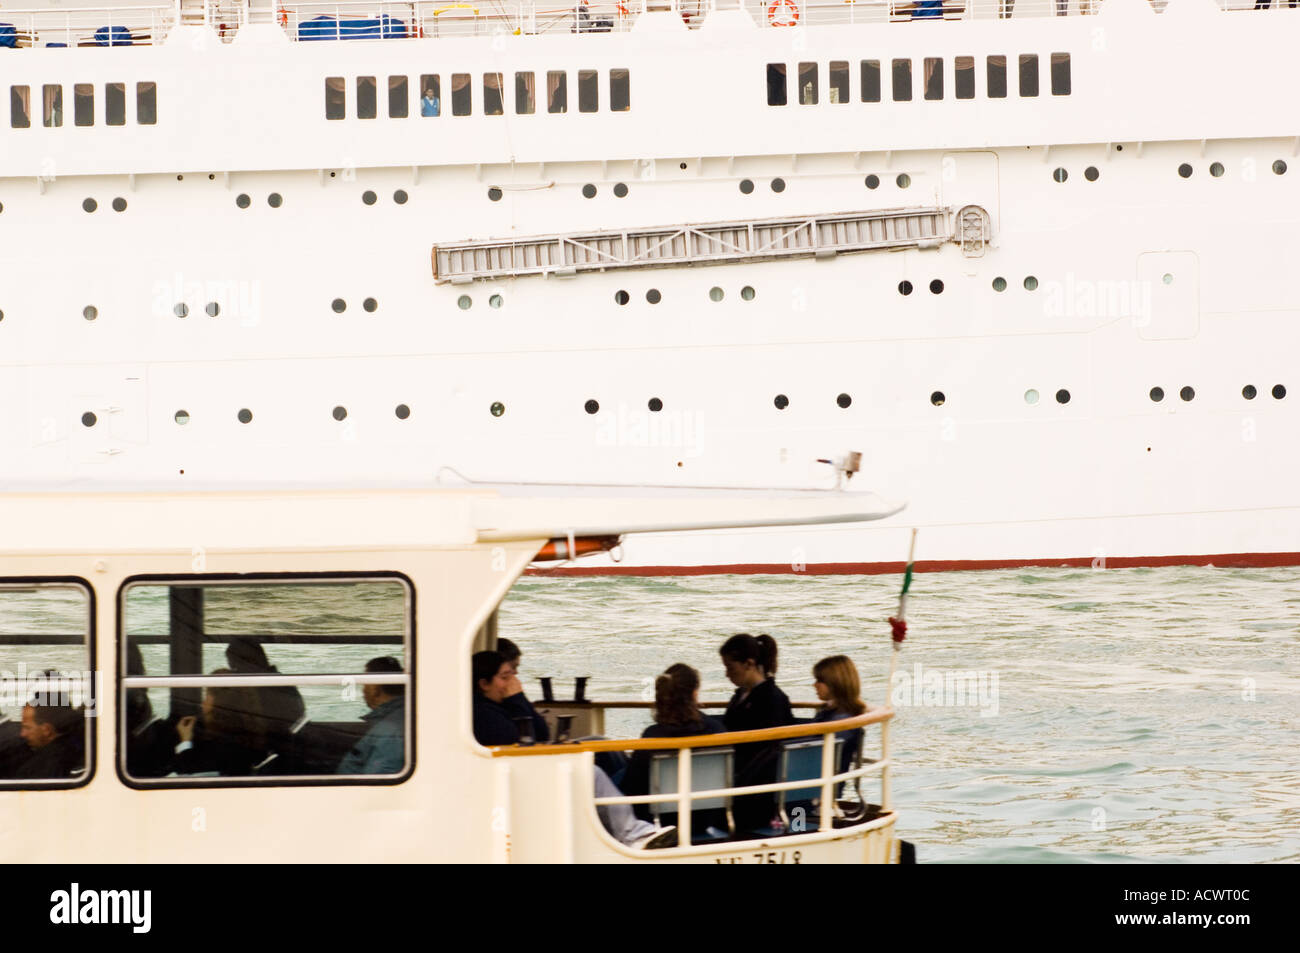 Stern of a small Venice Ferry Bus Boat full of commuters and the side of a large cruise ship passing each other - Stock Image